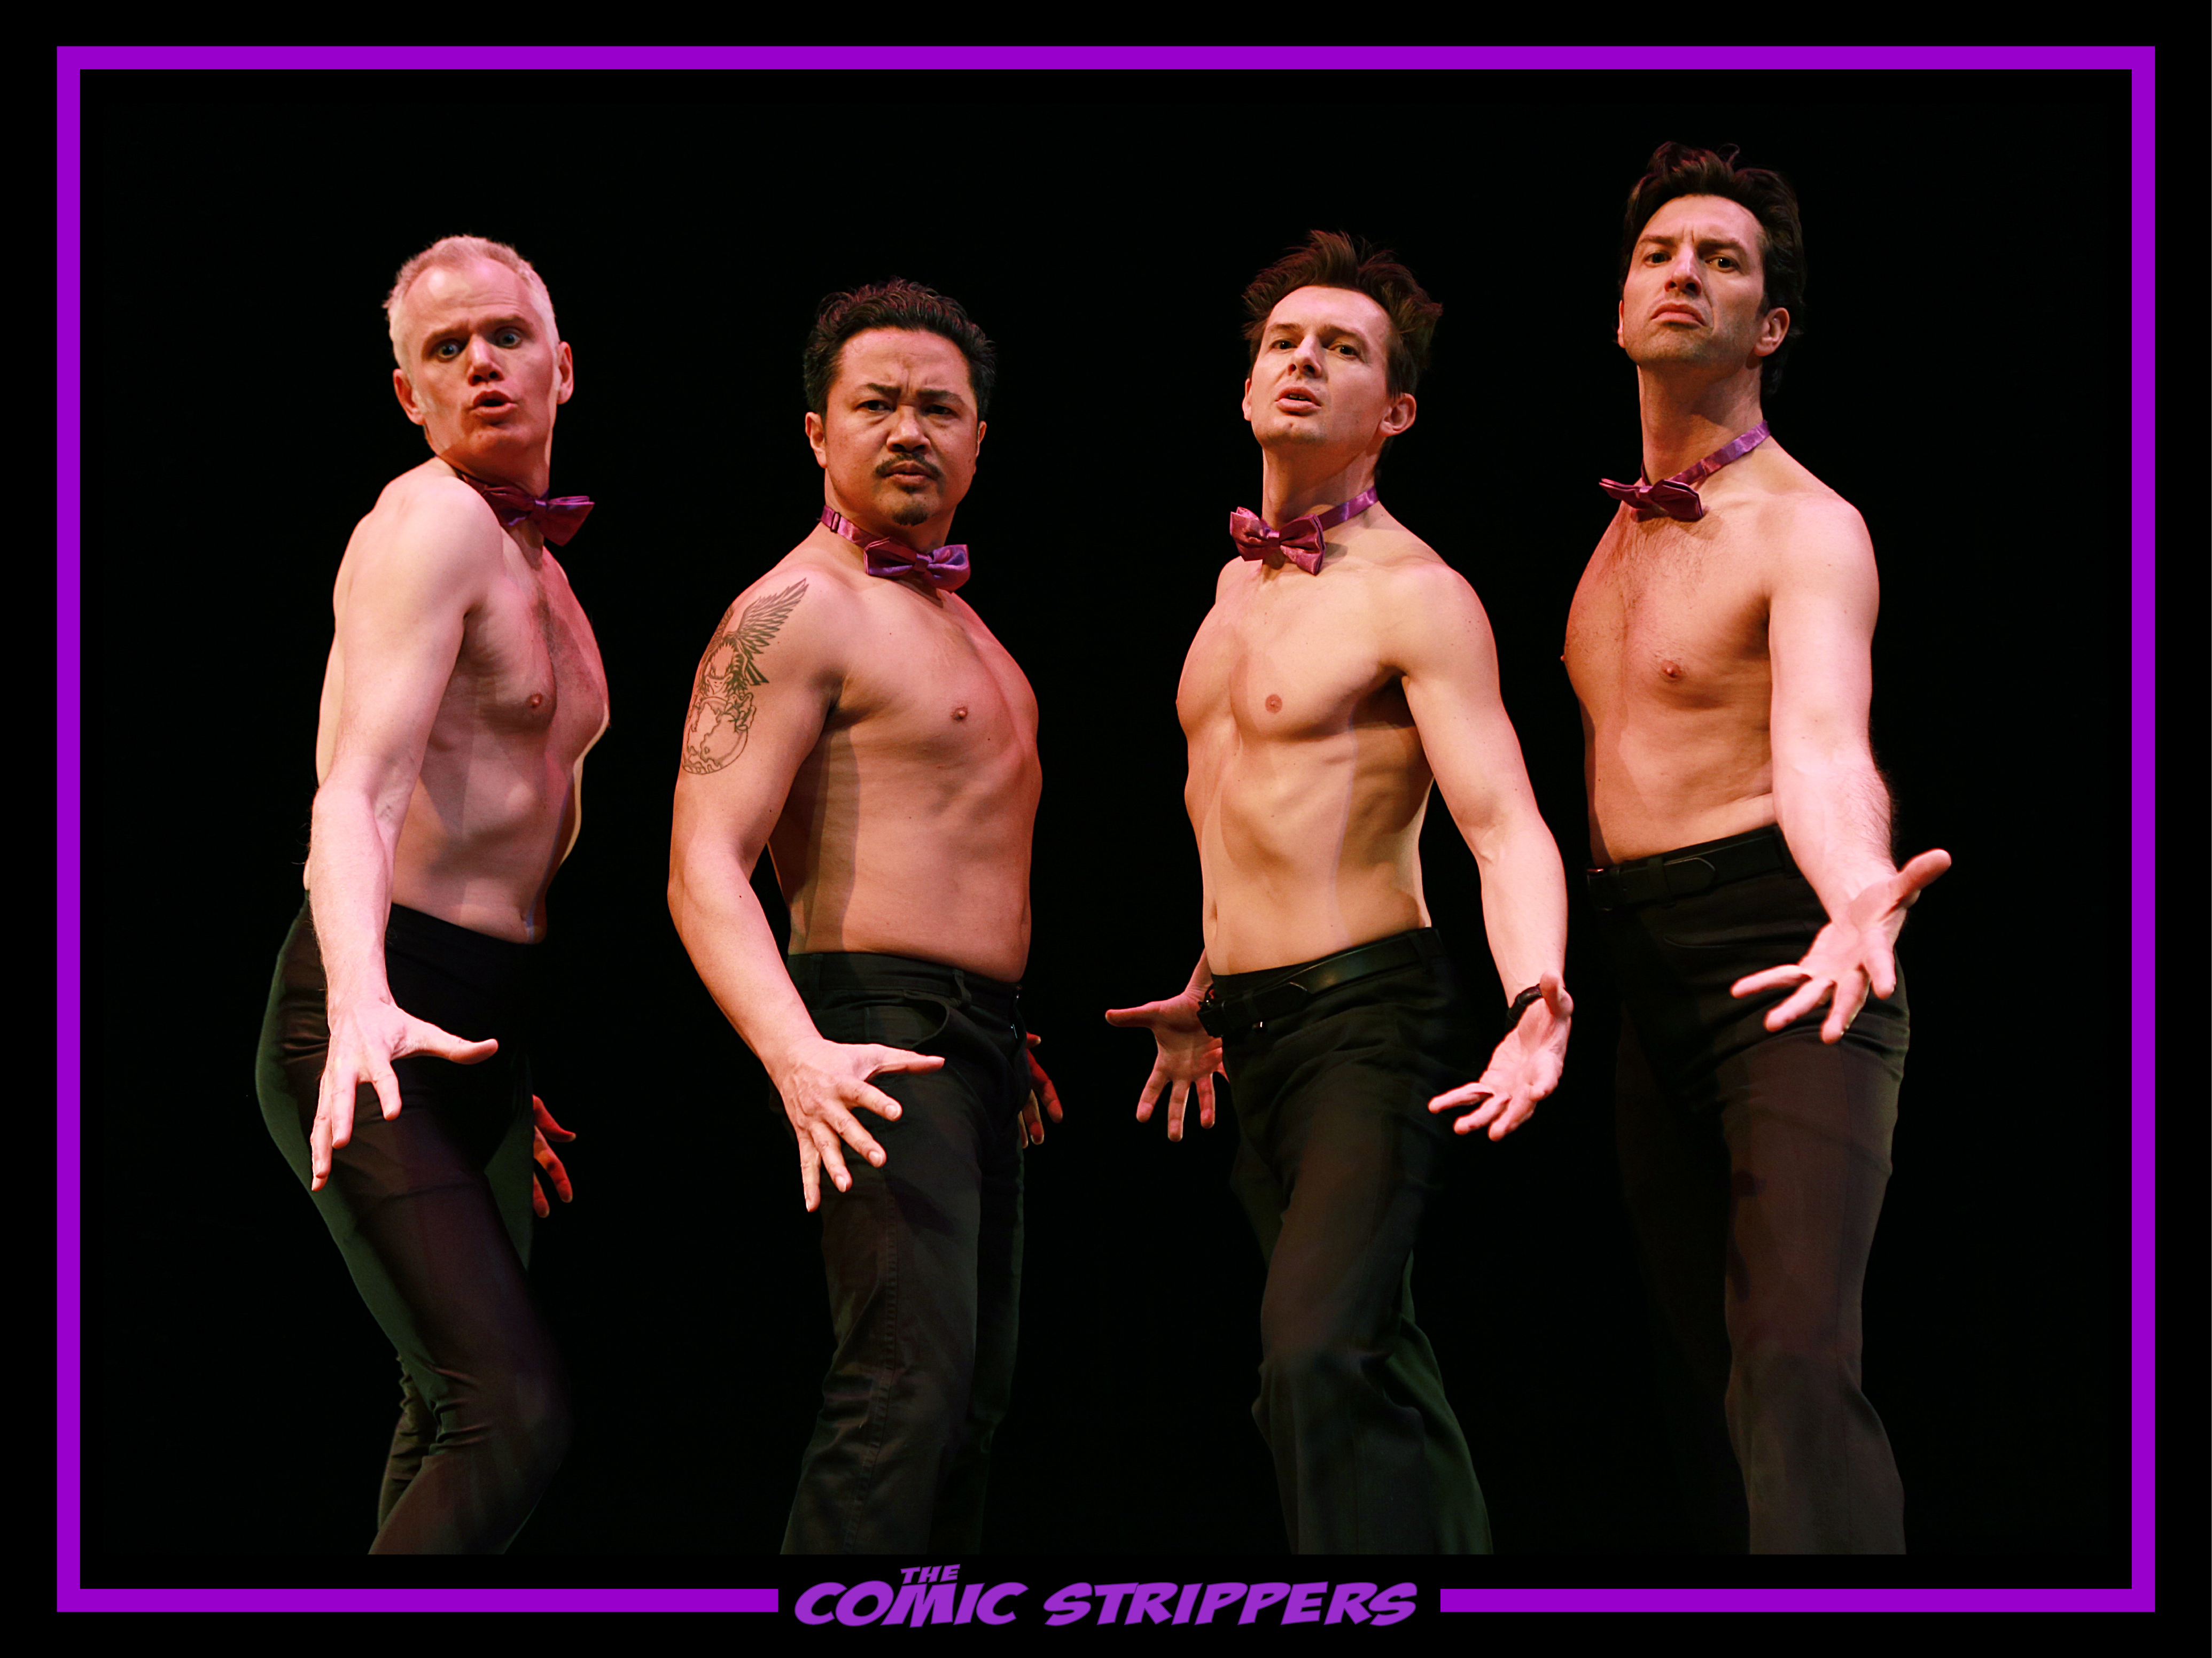 4 Comic Strippers